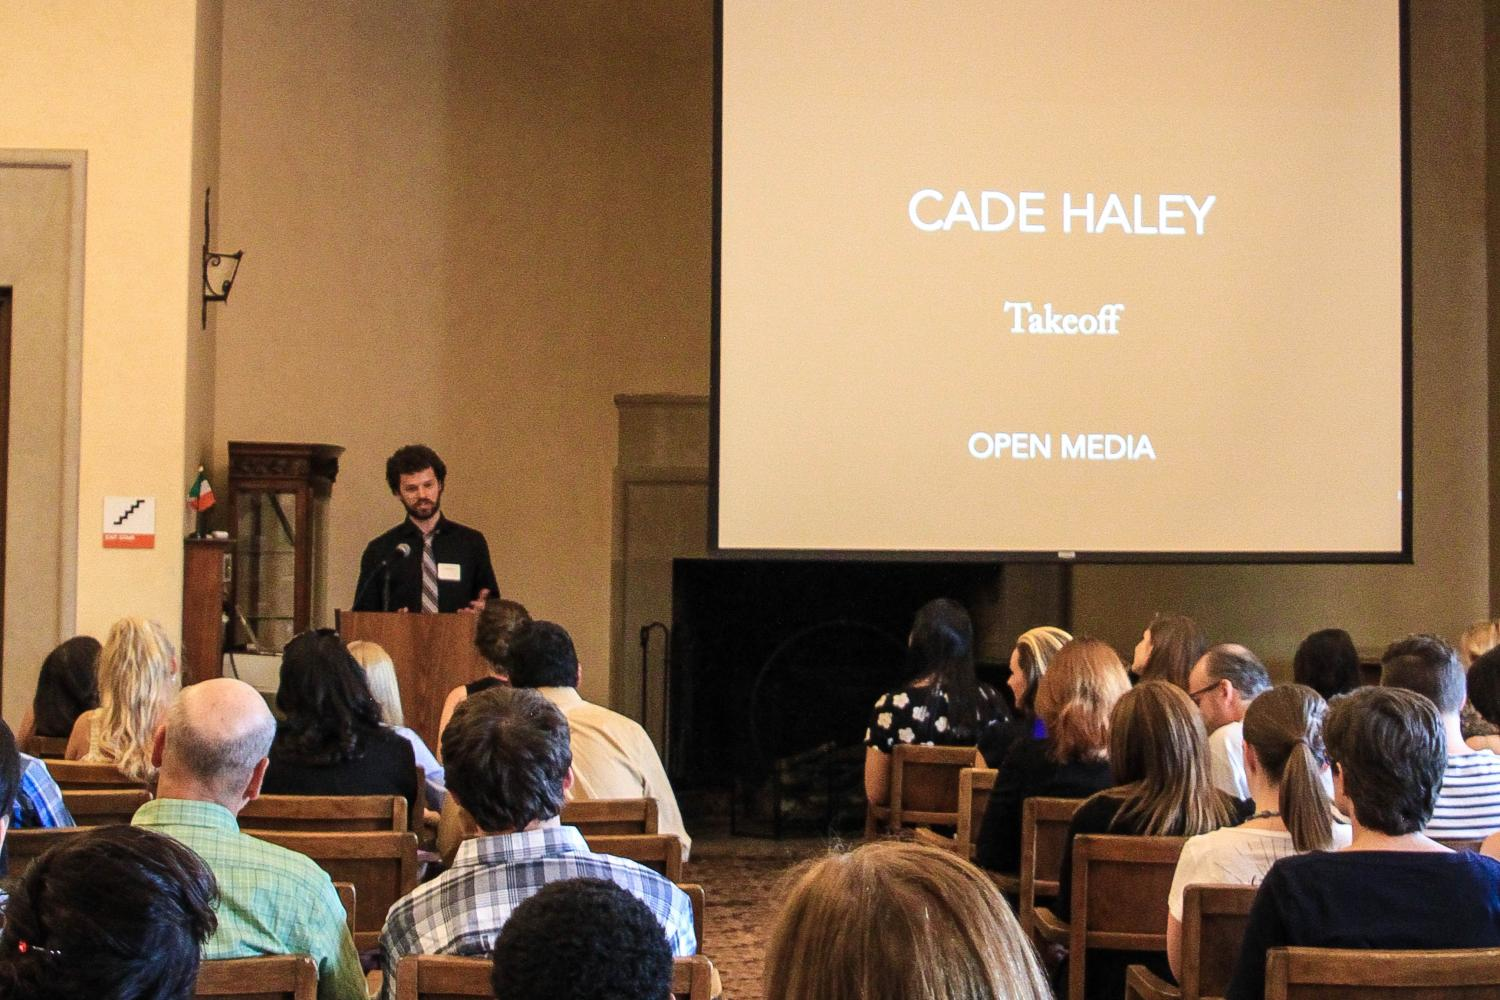 Cade Haley